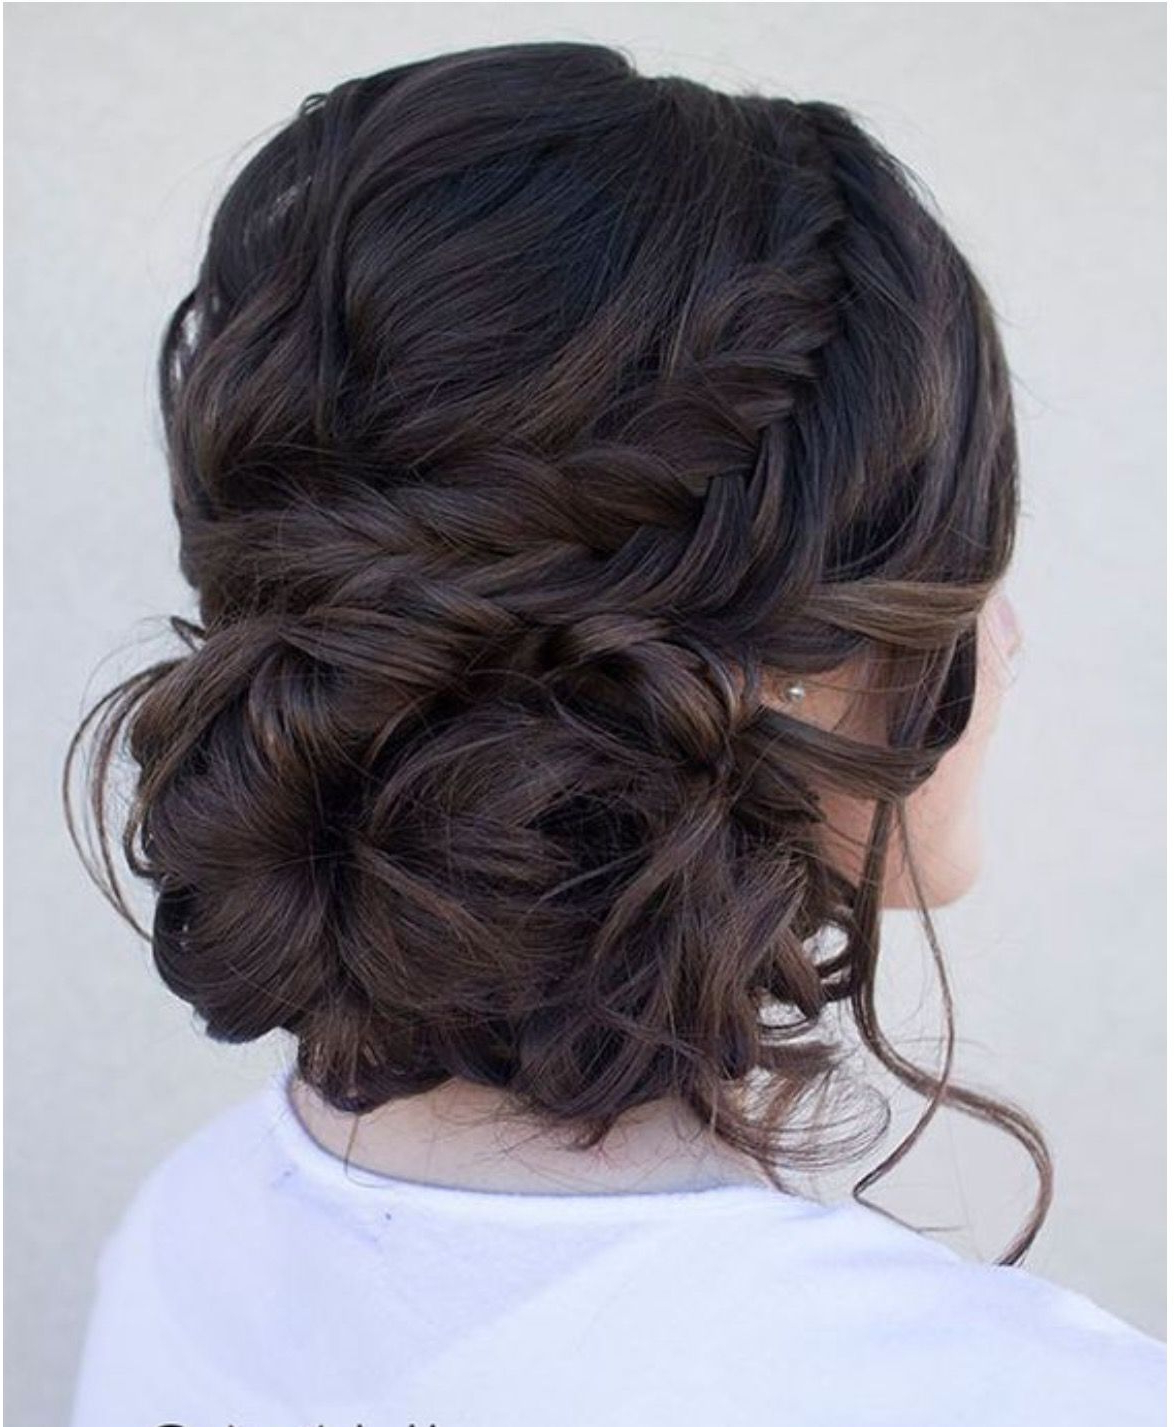 Preferred Curled Updo Hairstyles With Regard To Sam Updo On Dark Brown Hair As Opposed To Highlighted (View 11 of 20)